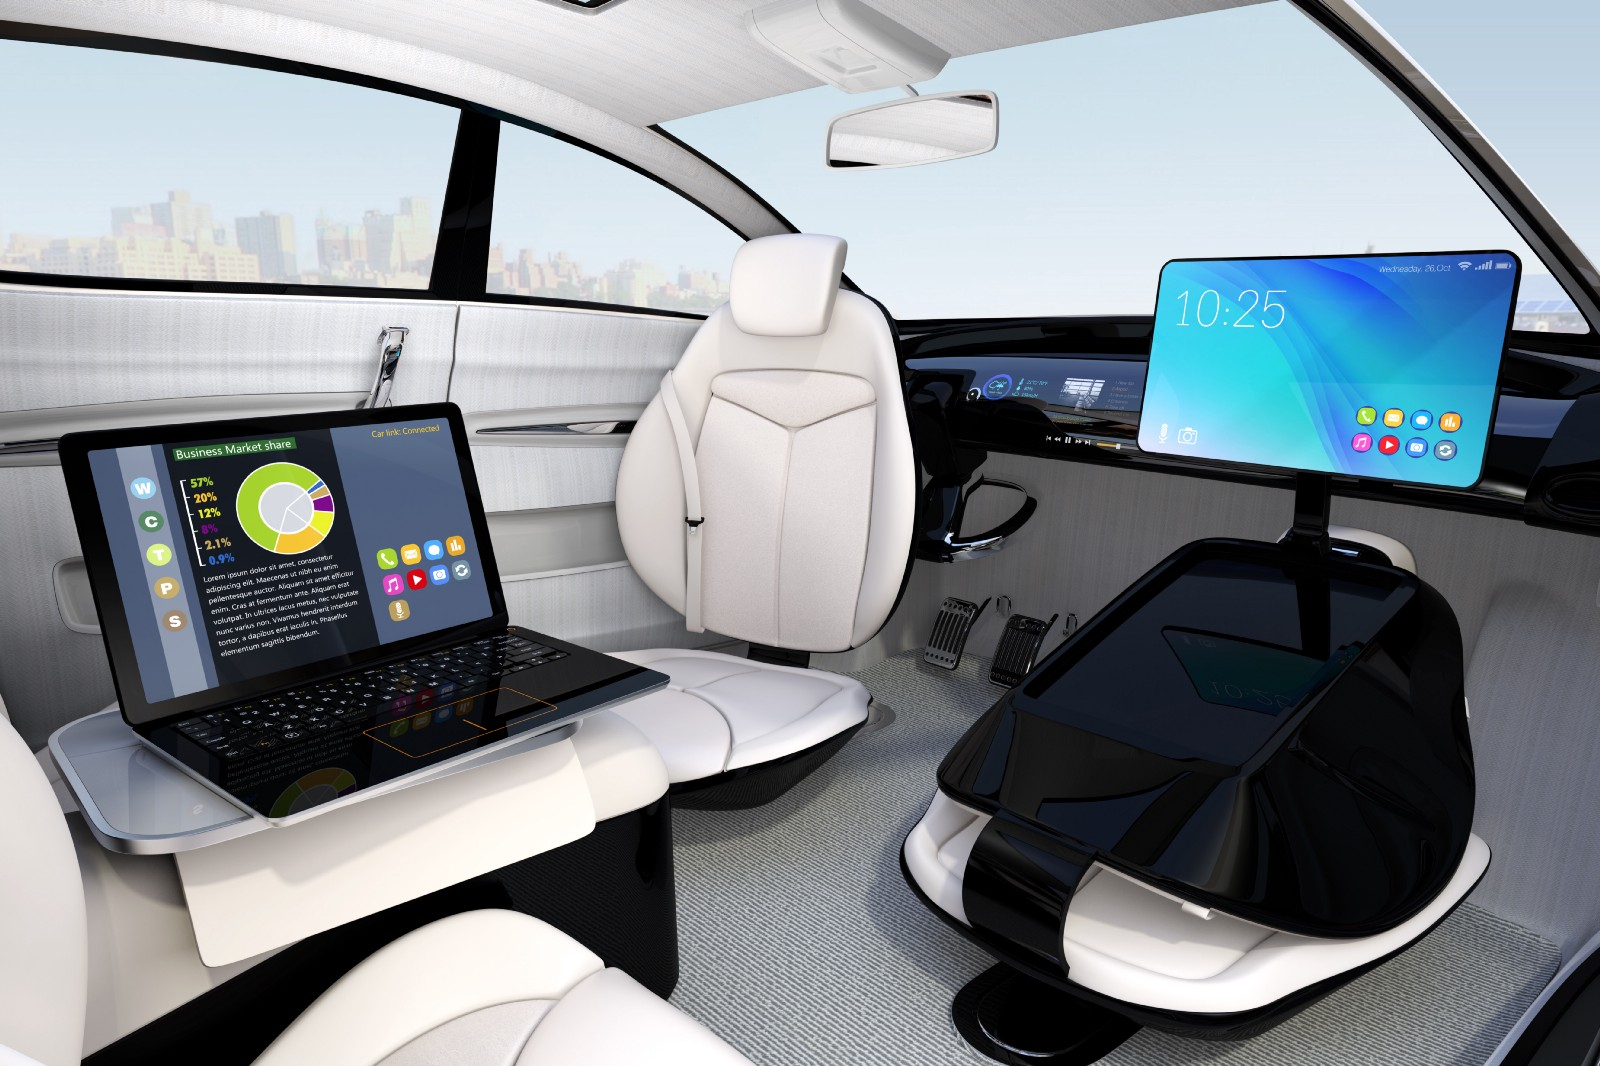 AI is helping industries - transportation - self driving car